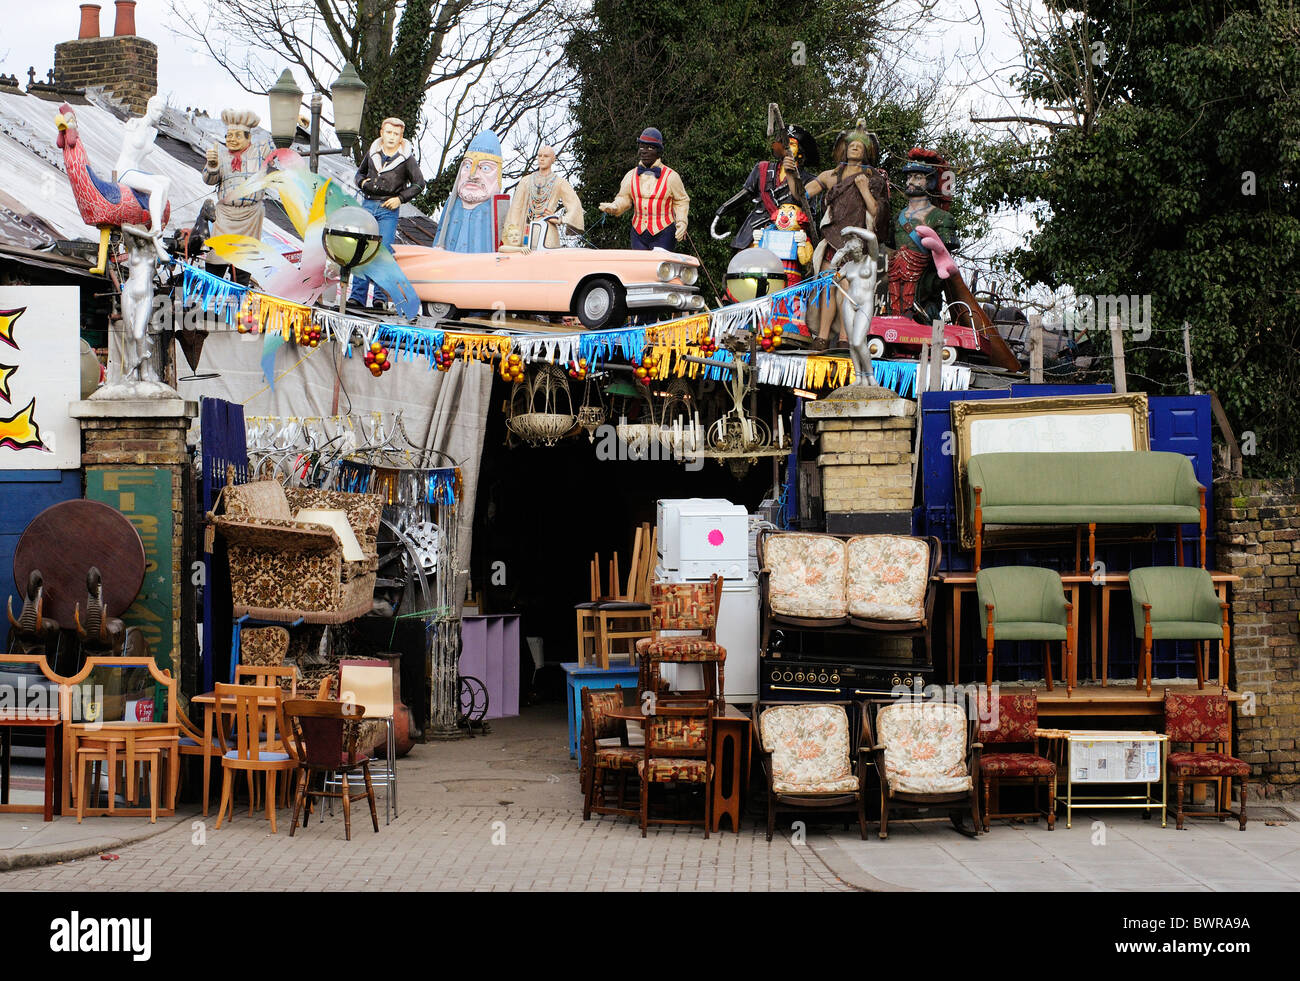 Aladdin's Cave Junk shop and reclamation yard and secondhand furniture shop, Lewisham way, London - Stock Image